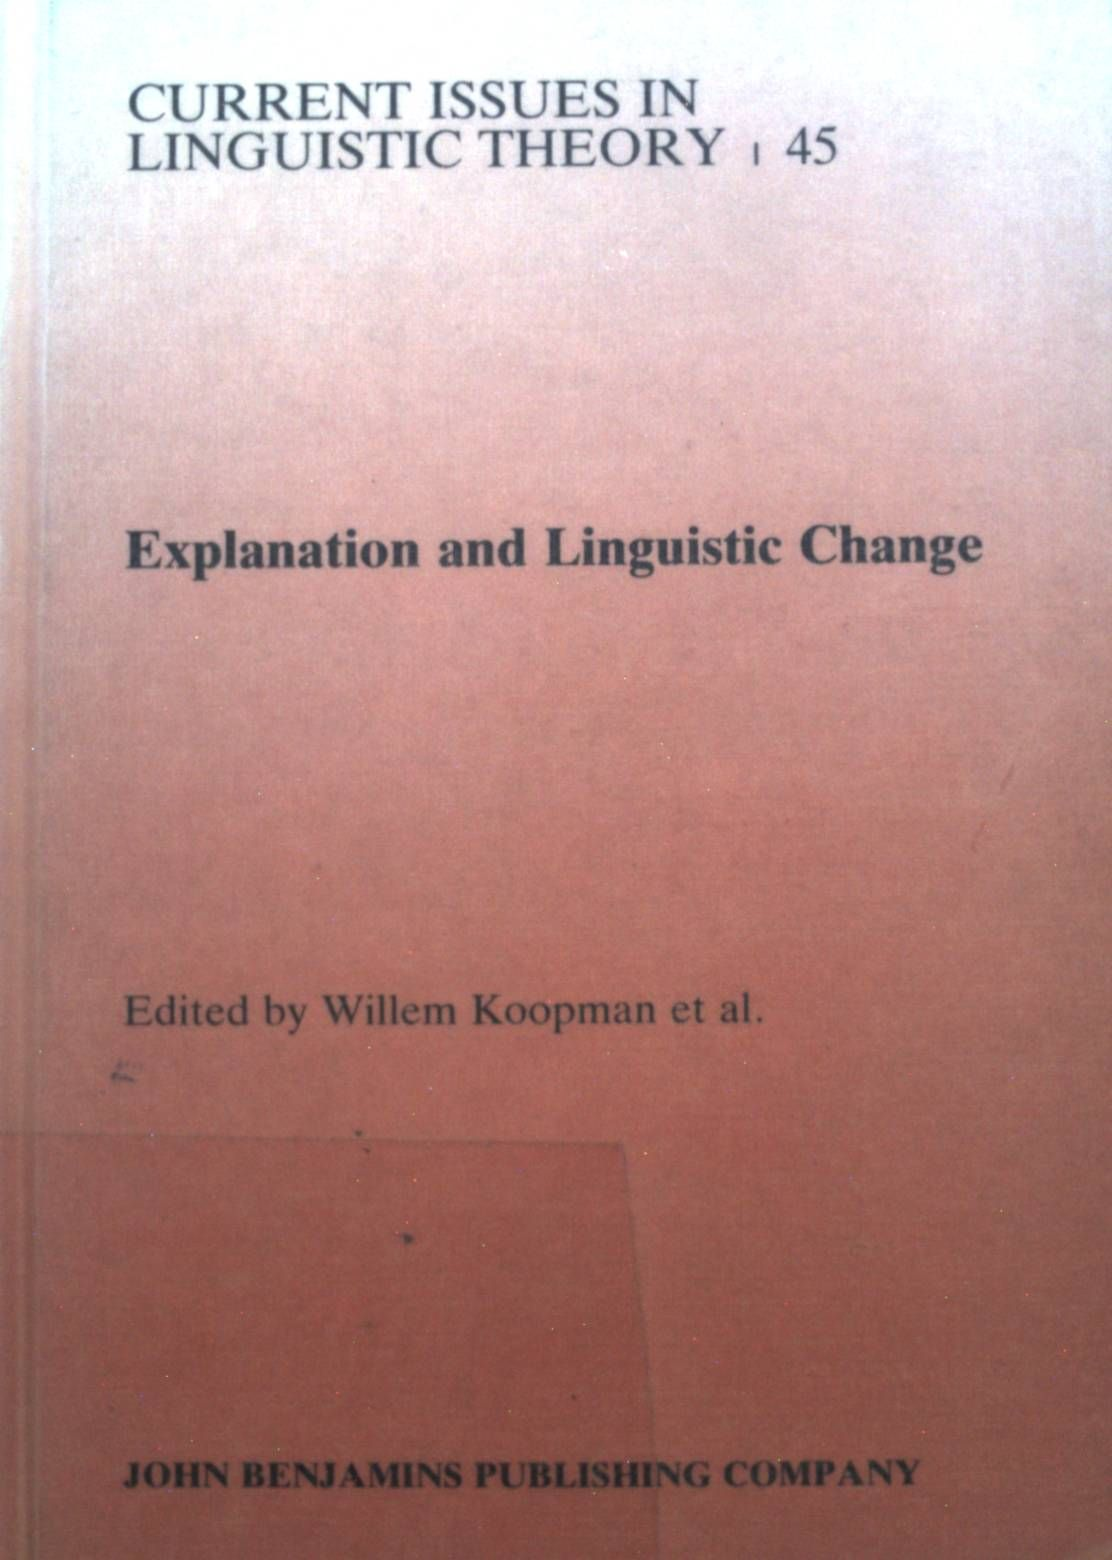 Explanation and Linguistic Change. Amsterdam Studies in the Theory & History of Linguistic Science: Series Iv: Current Issues in Linguistic Theory, Vol. 45 - Koopman, Willem F.